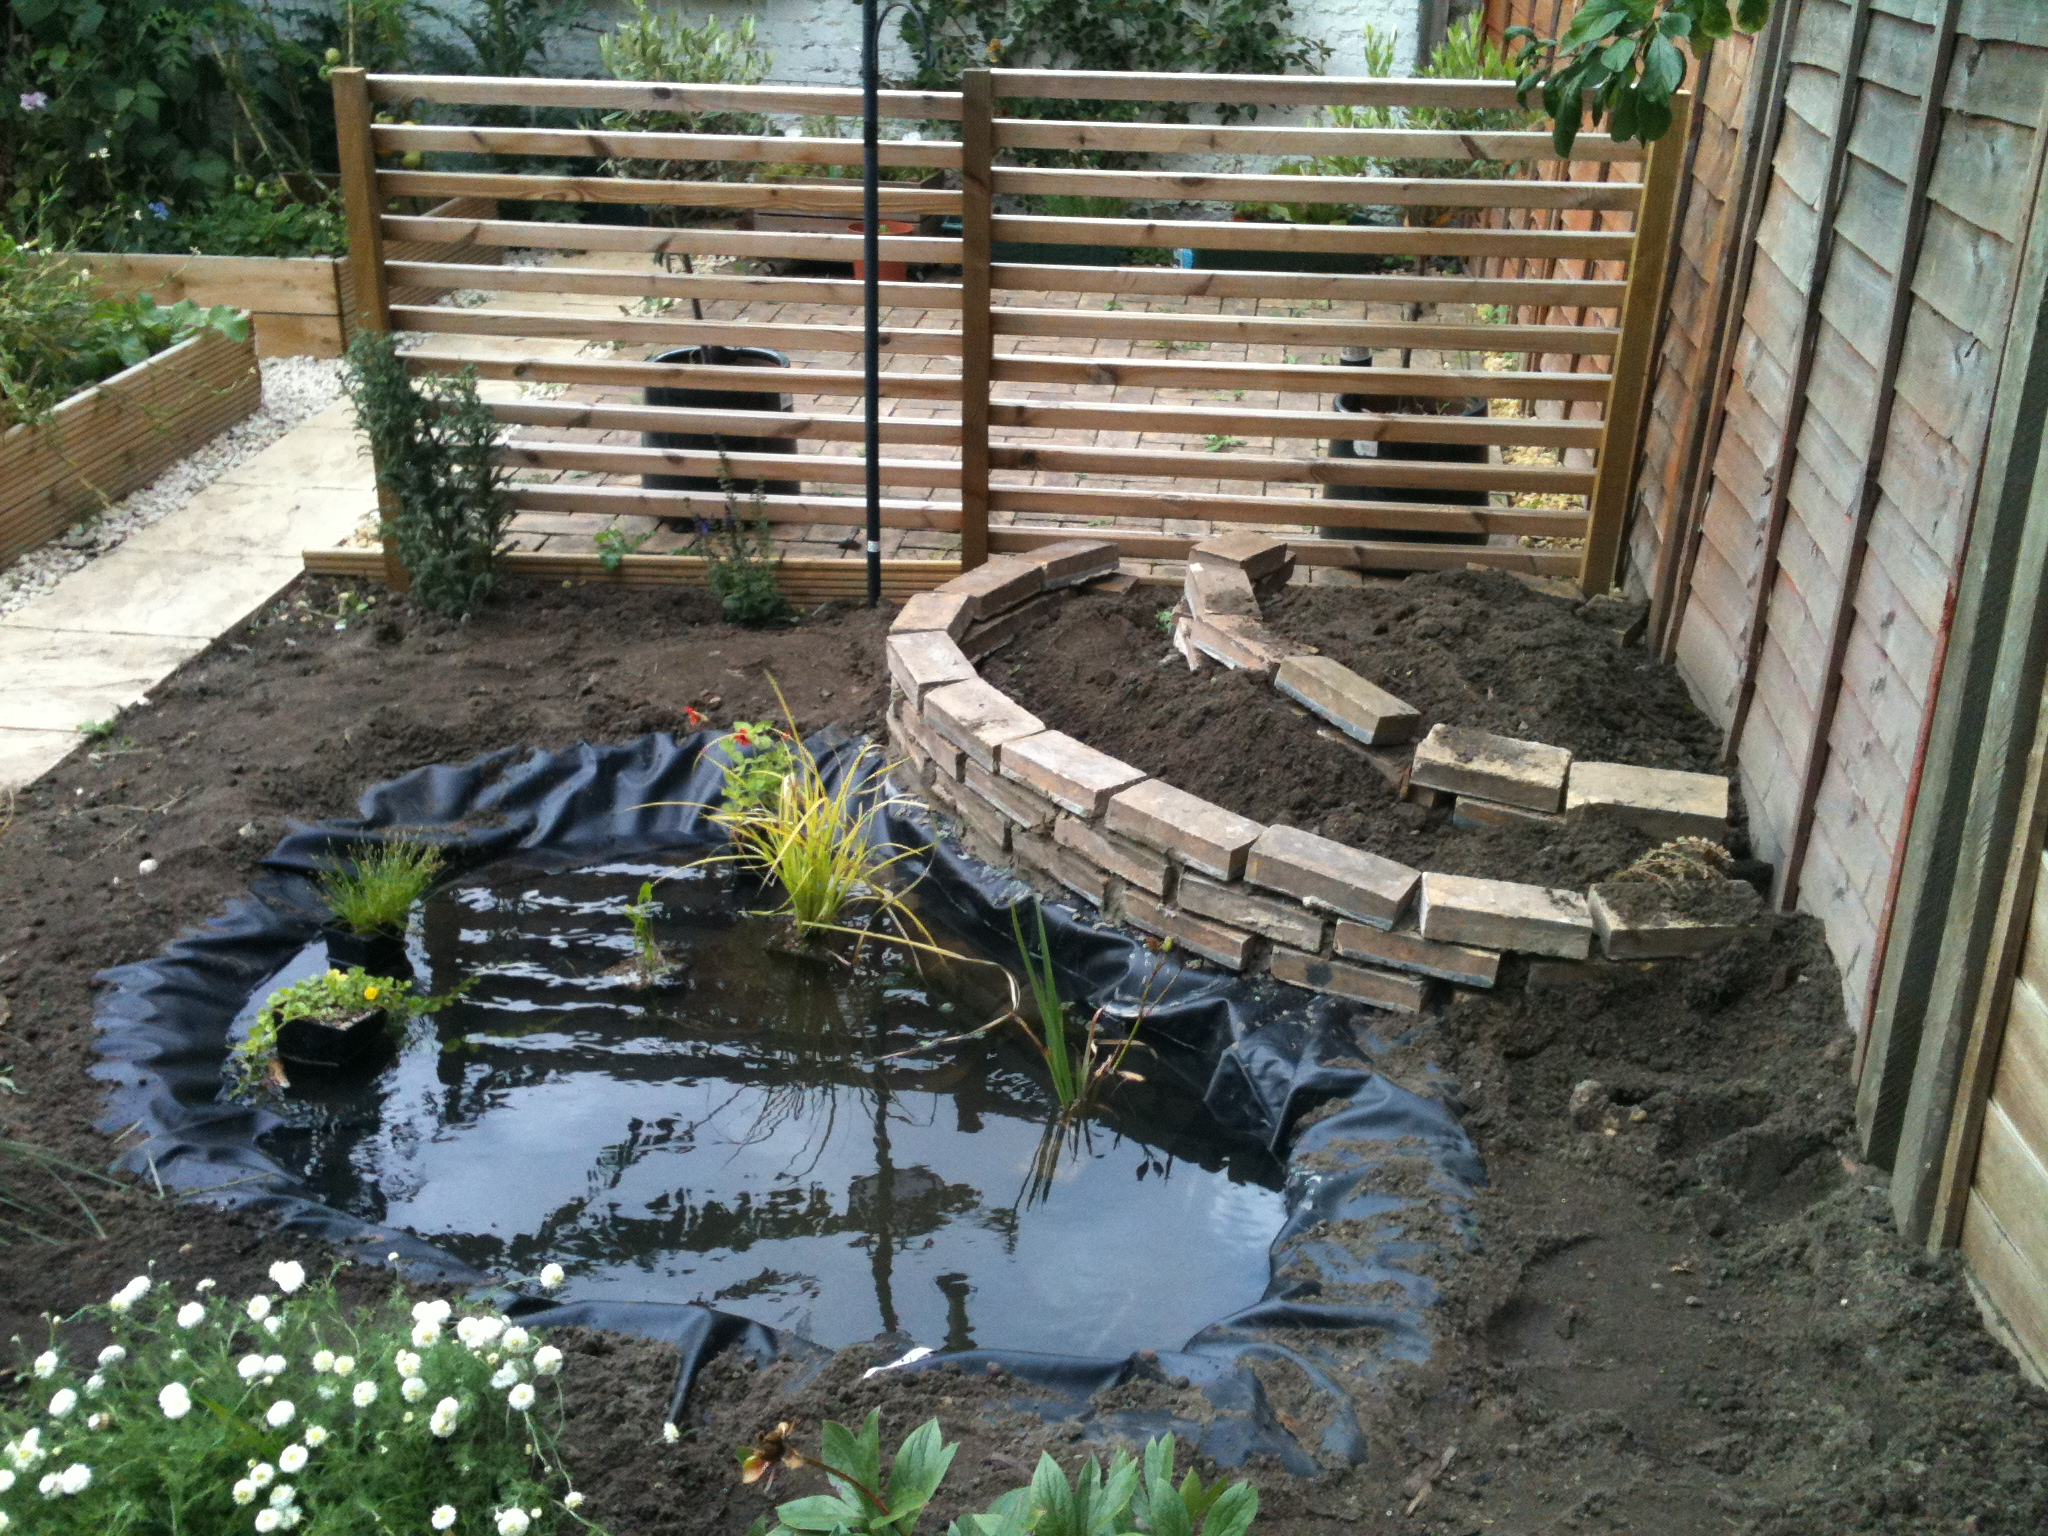 Pond nature conservation lewisham for Garden with a pond